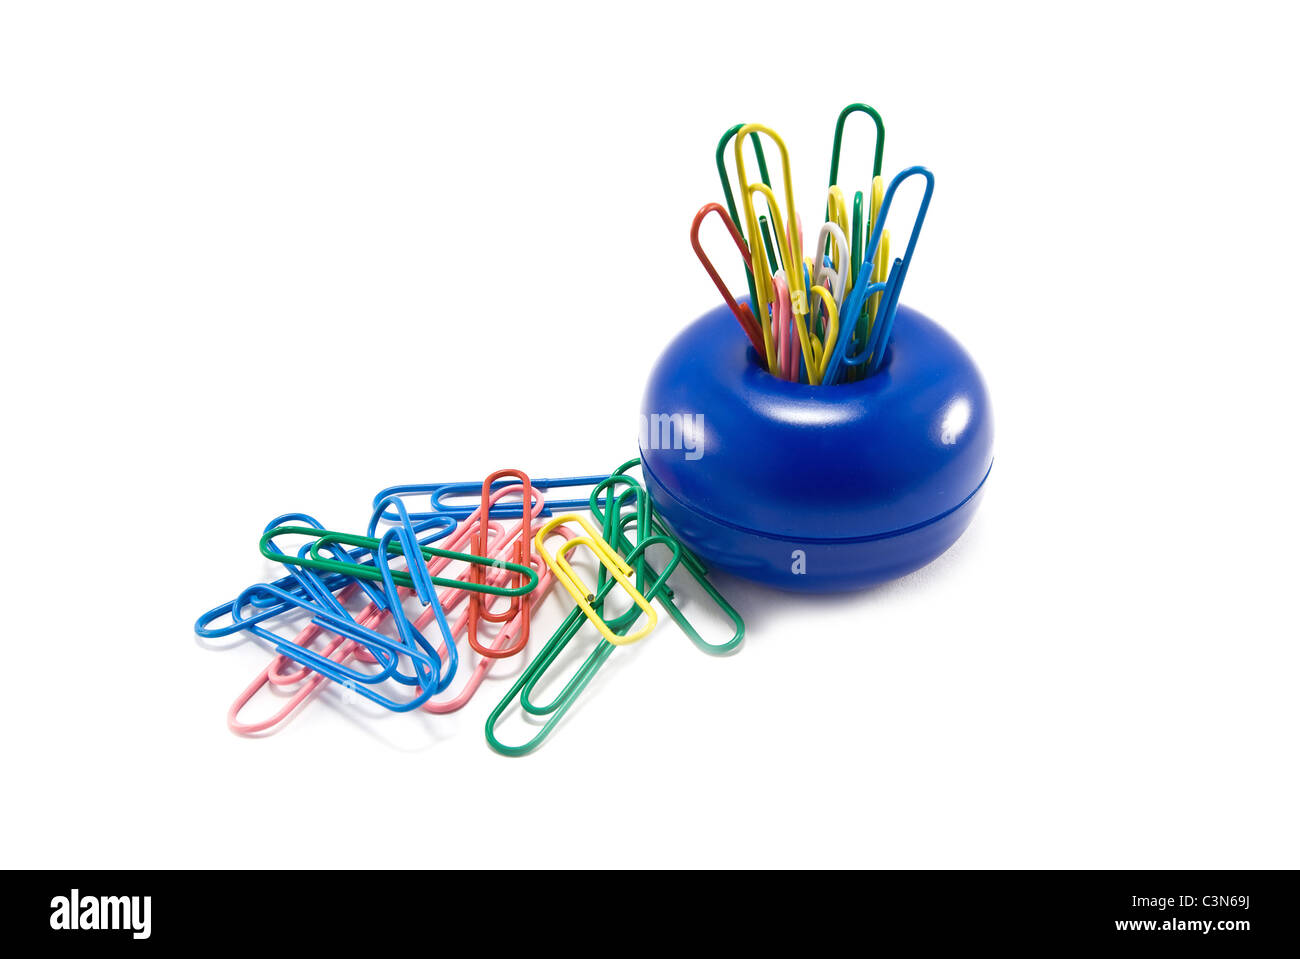 isolated paper clips are on support - Stock Image